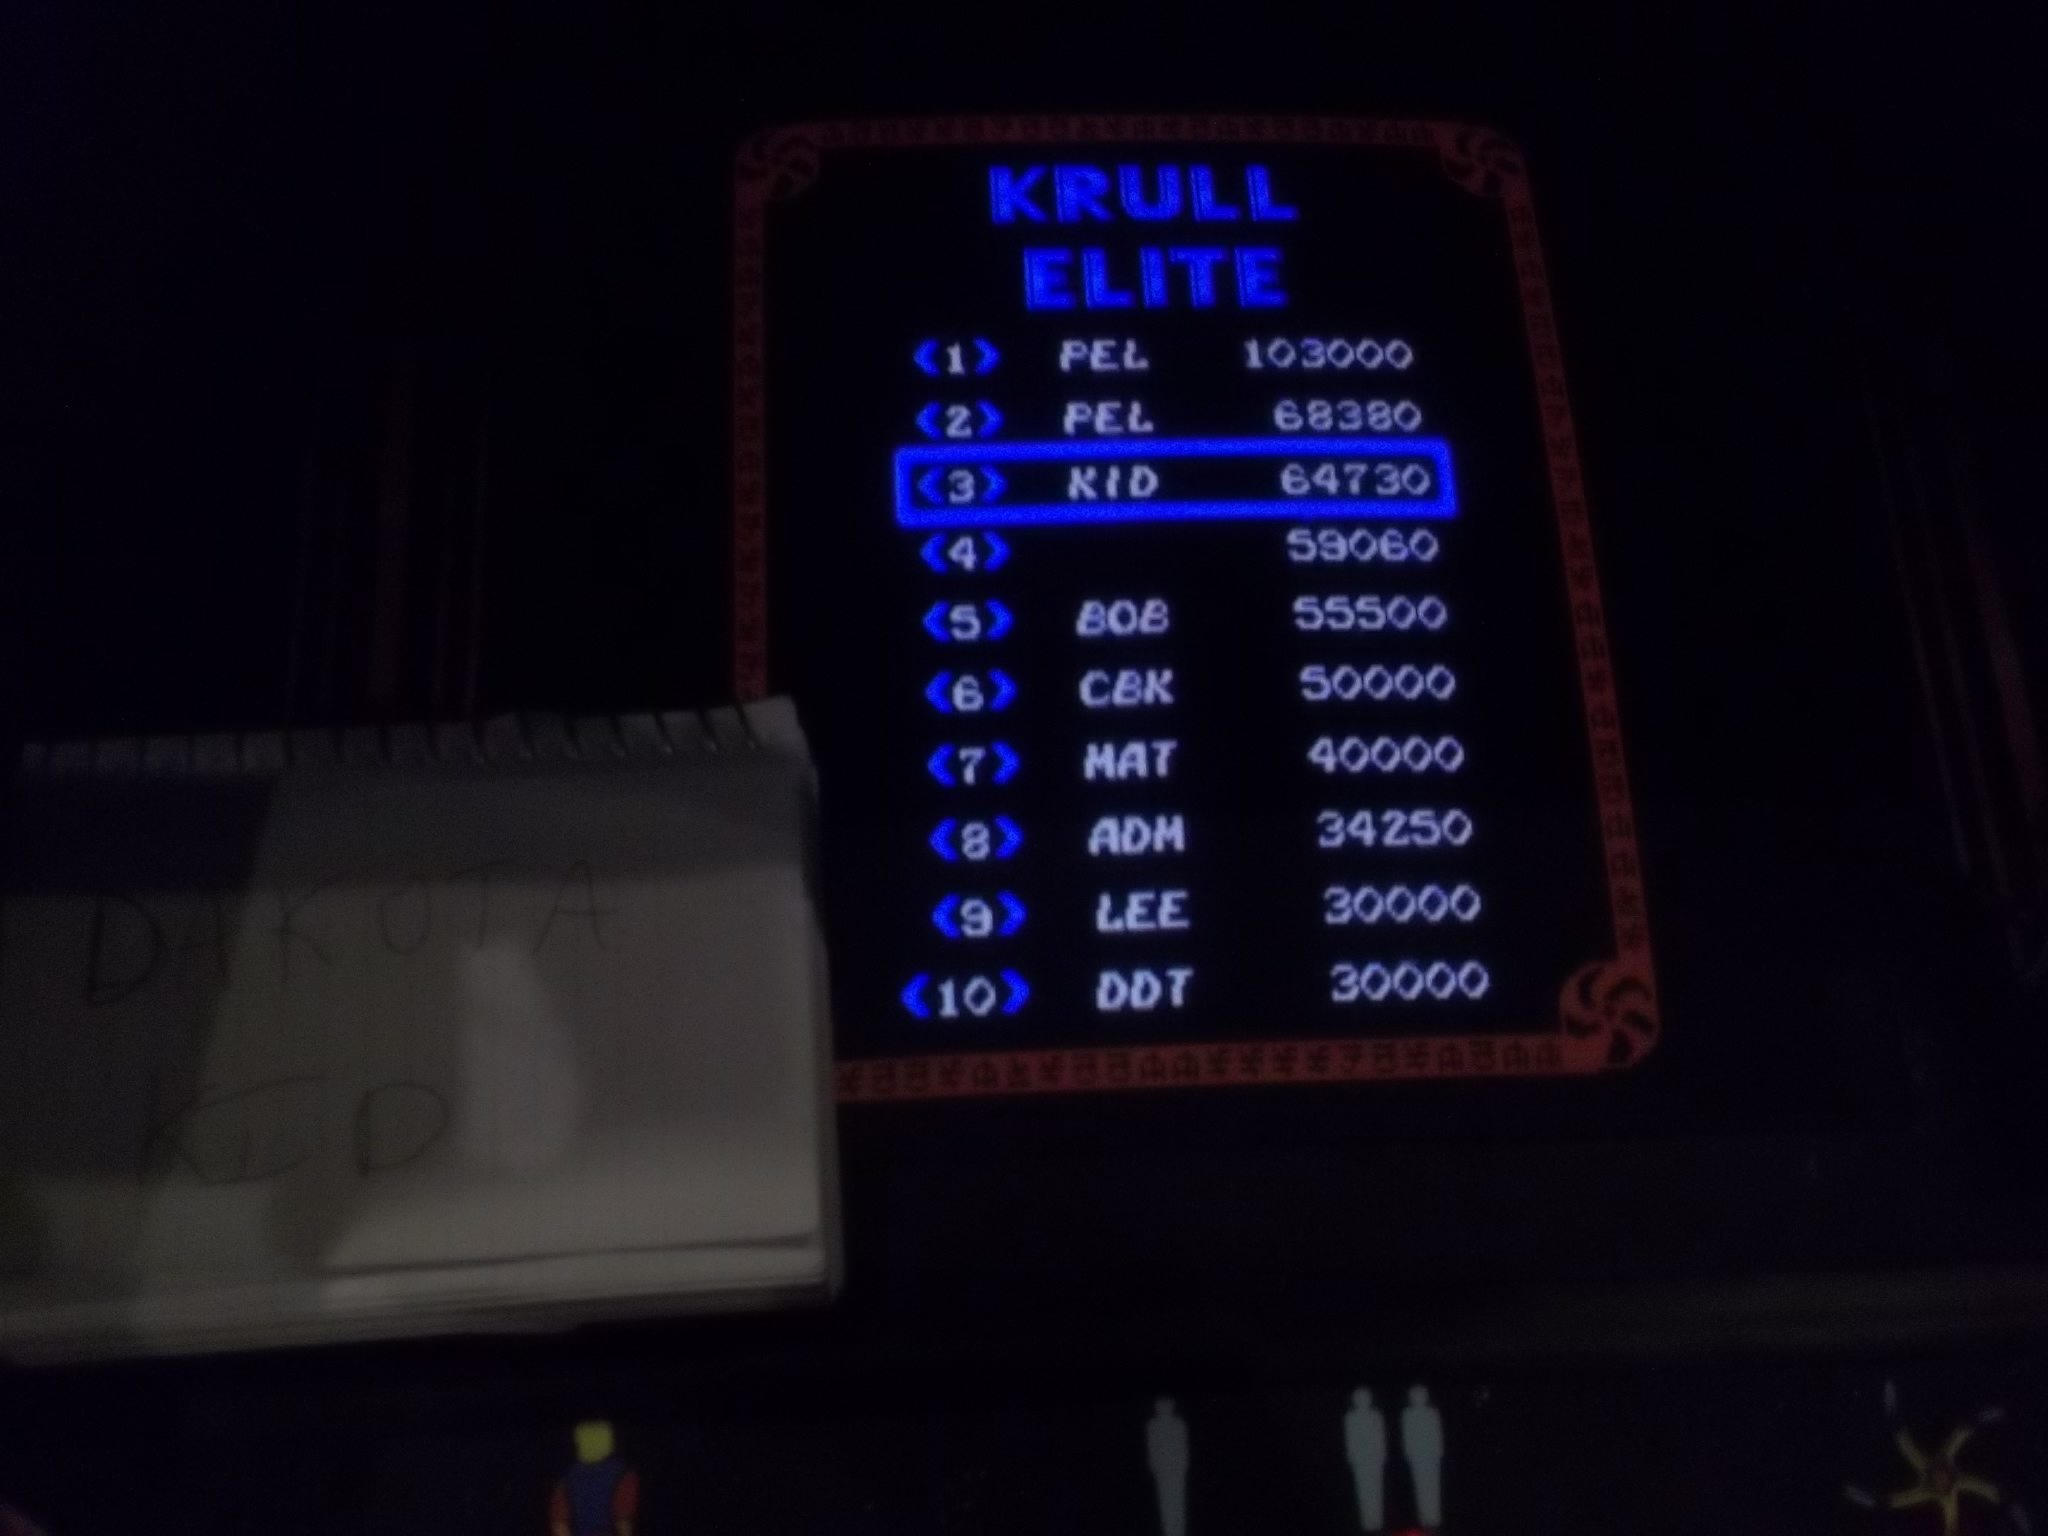 Krull 64,730 points